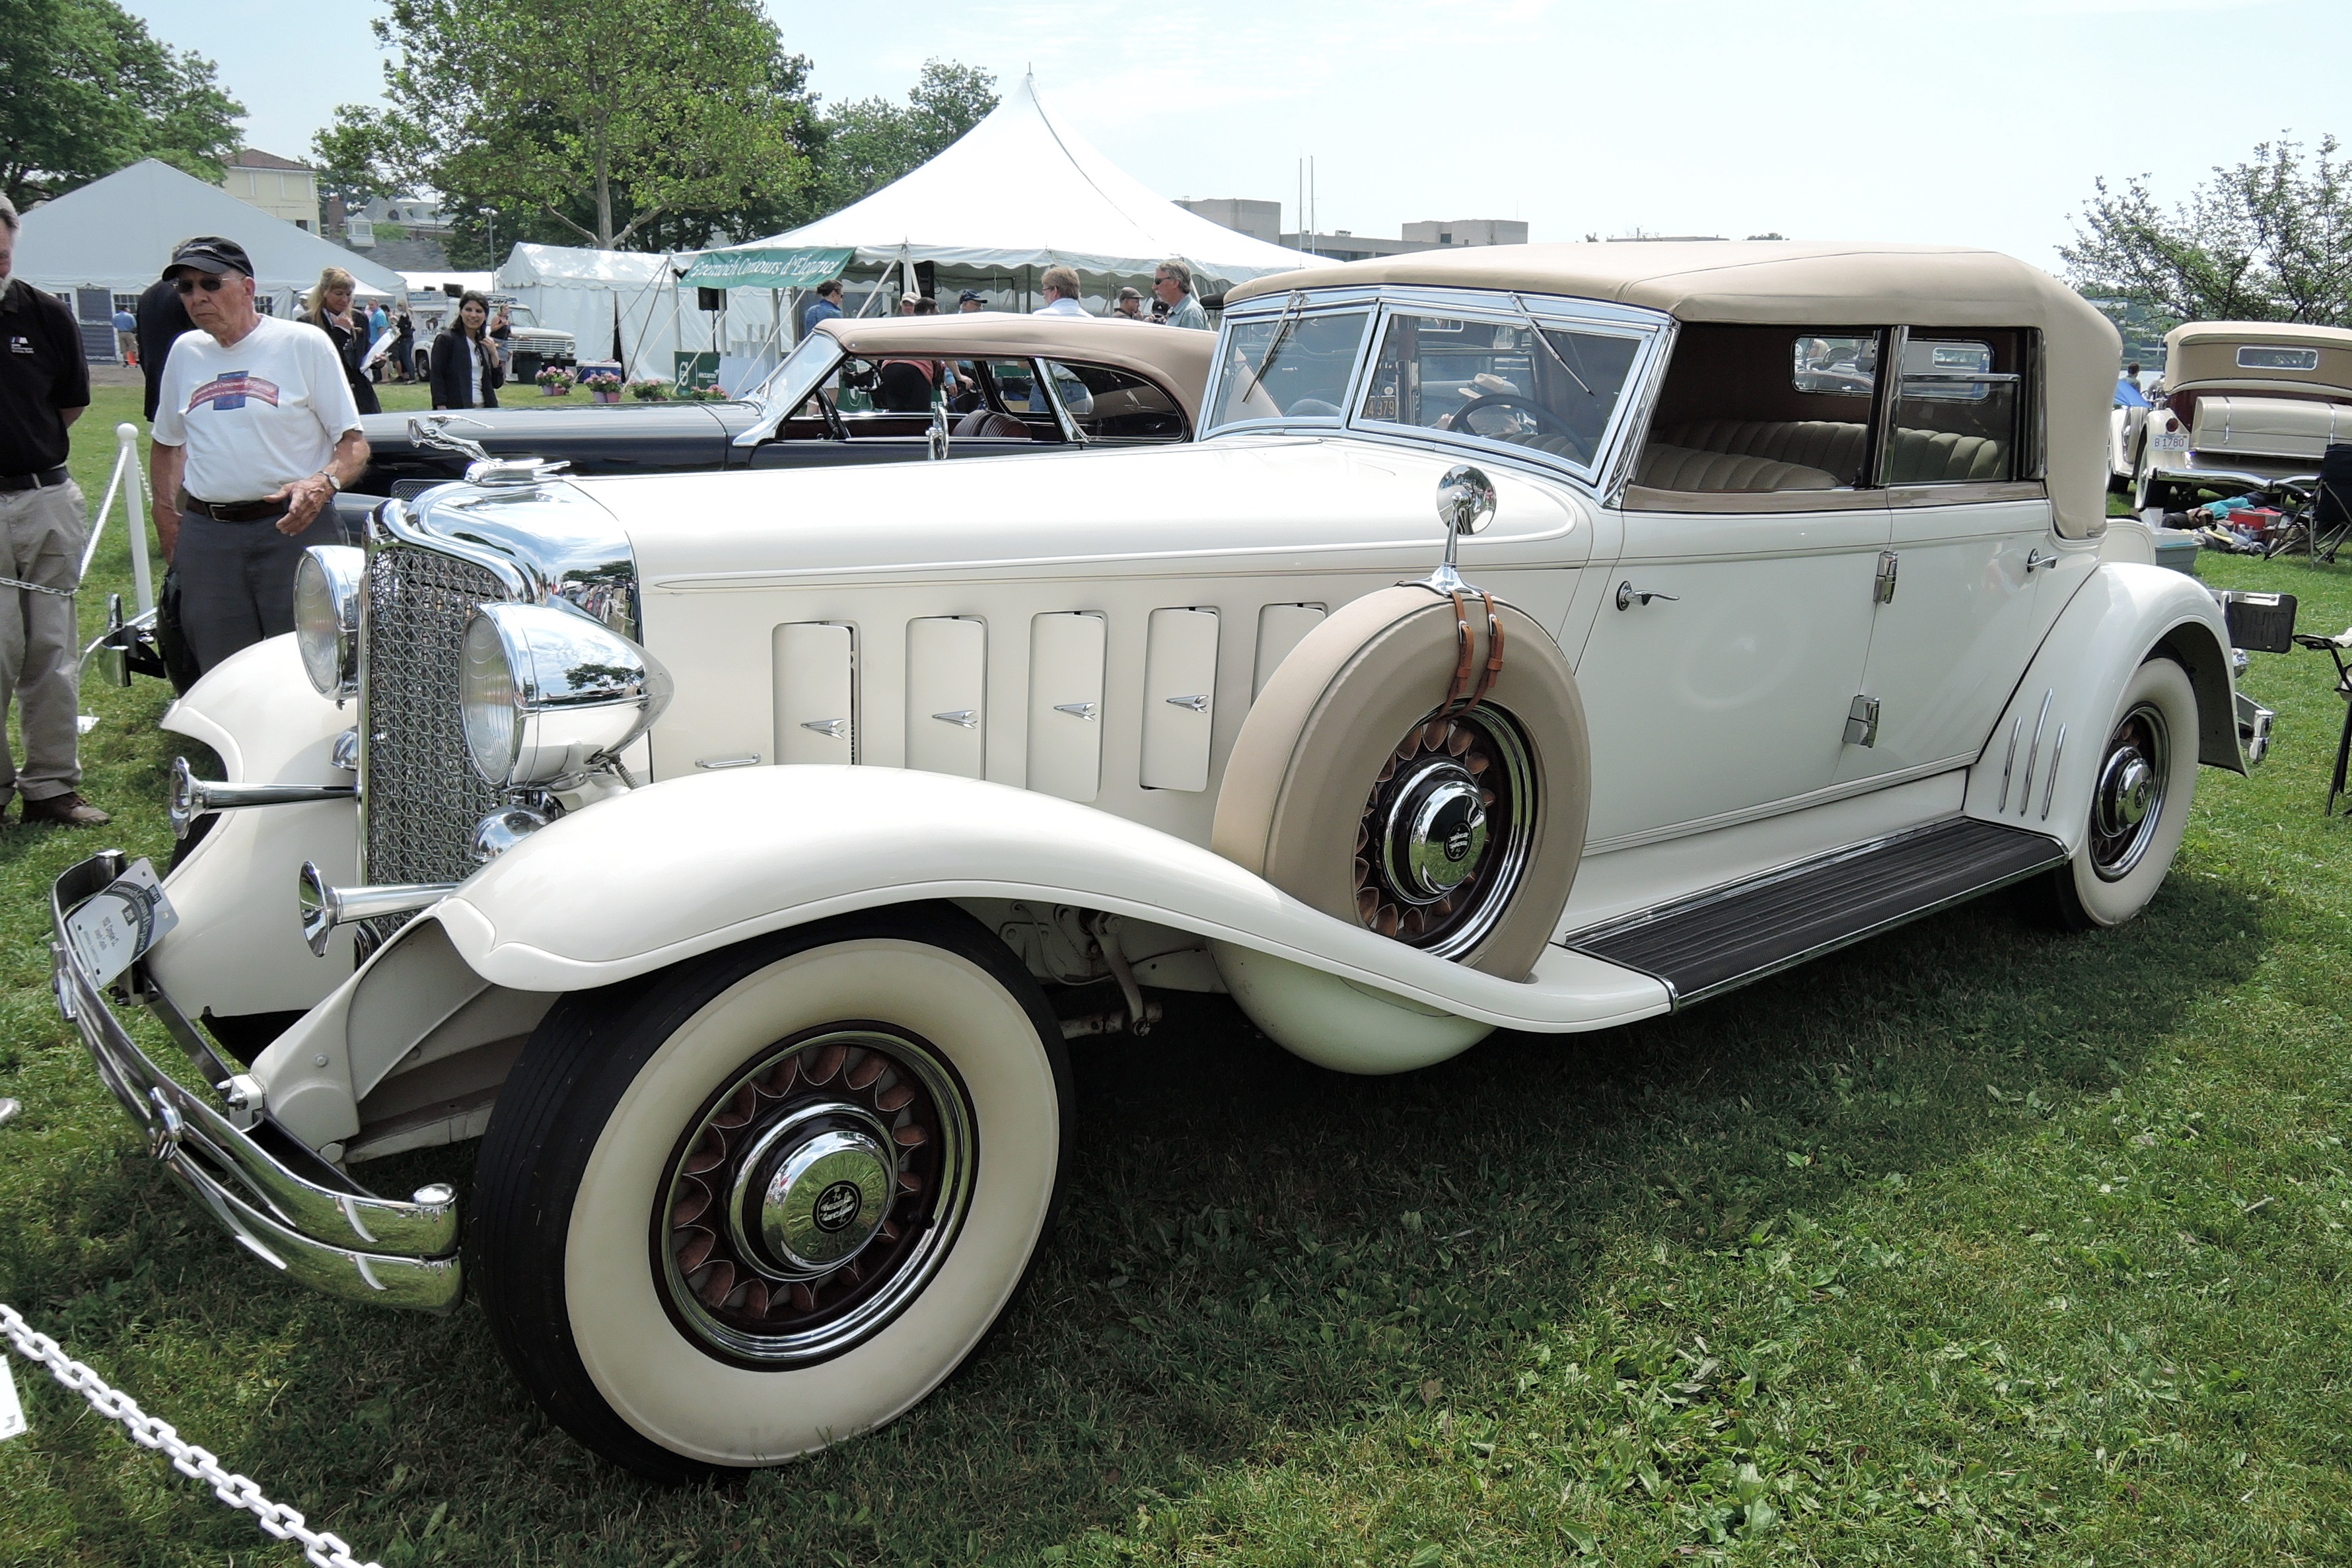 white 1932 Chrysler CL Convertible Sedan - greenwich concours